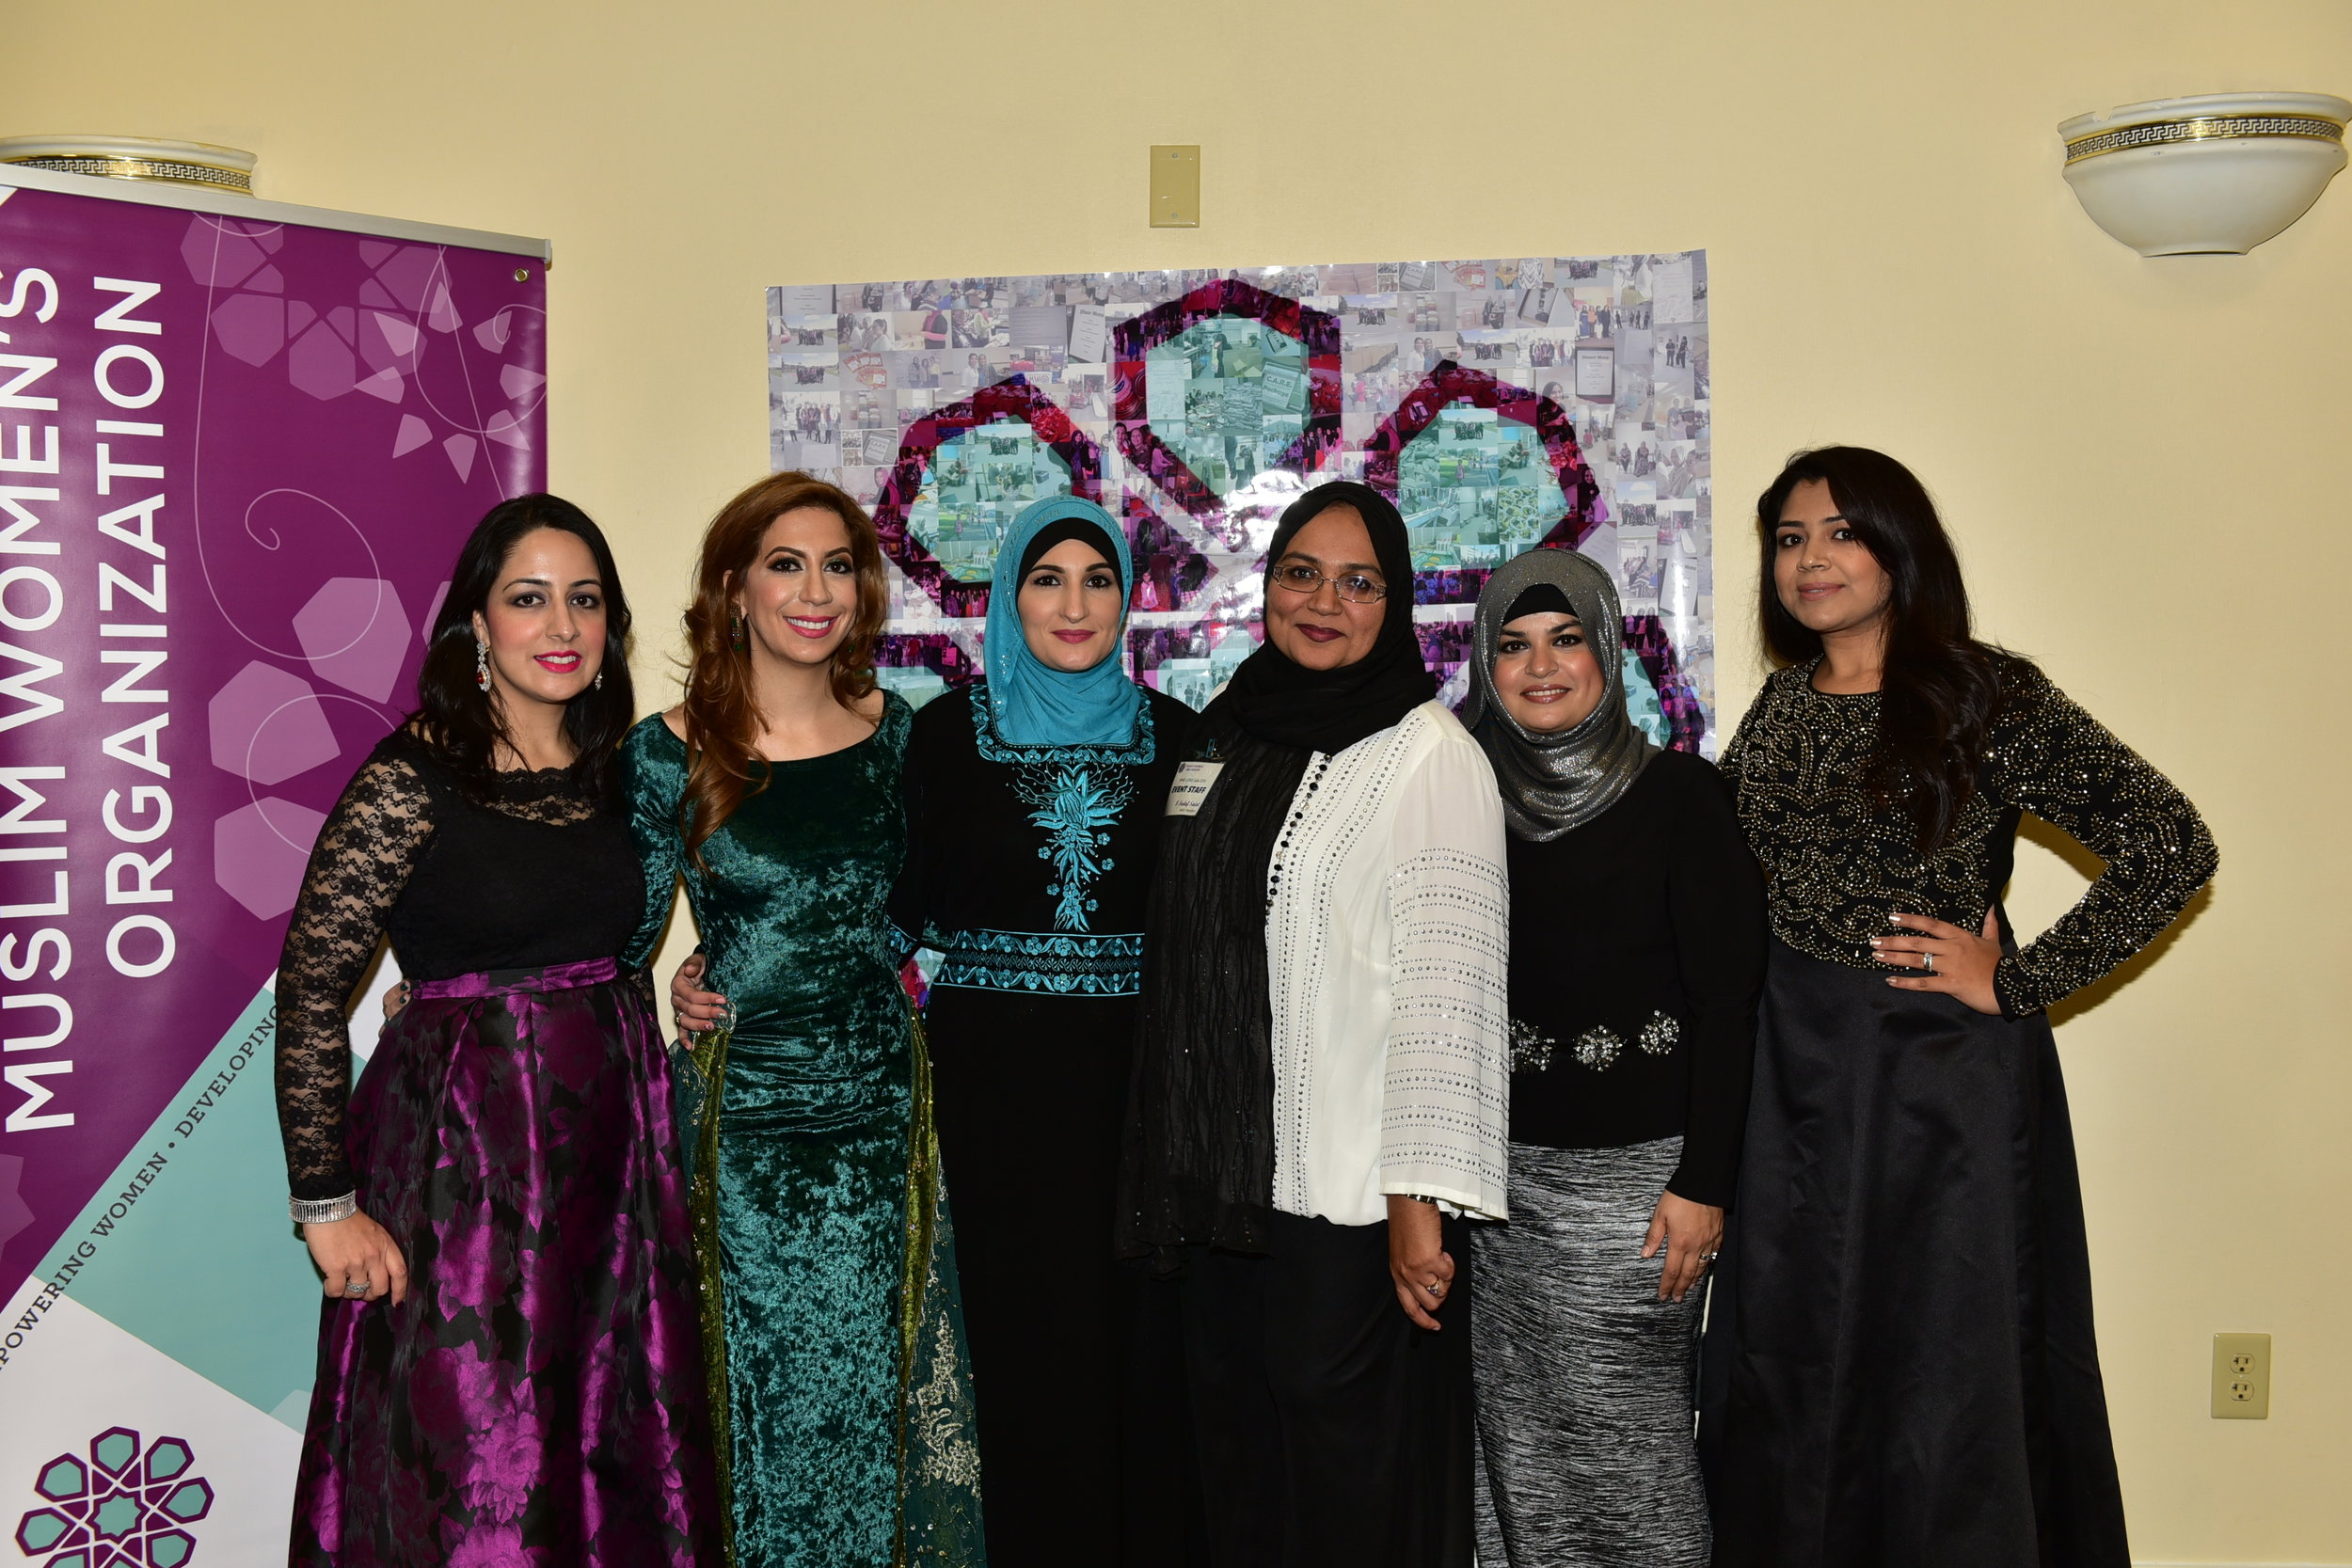 MWO Board members with 2016 GEMS Gala keynote speaker Linda Sarsour.